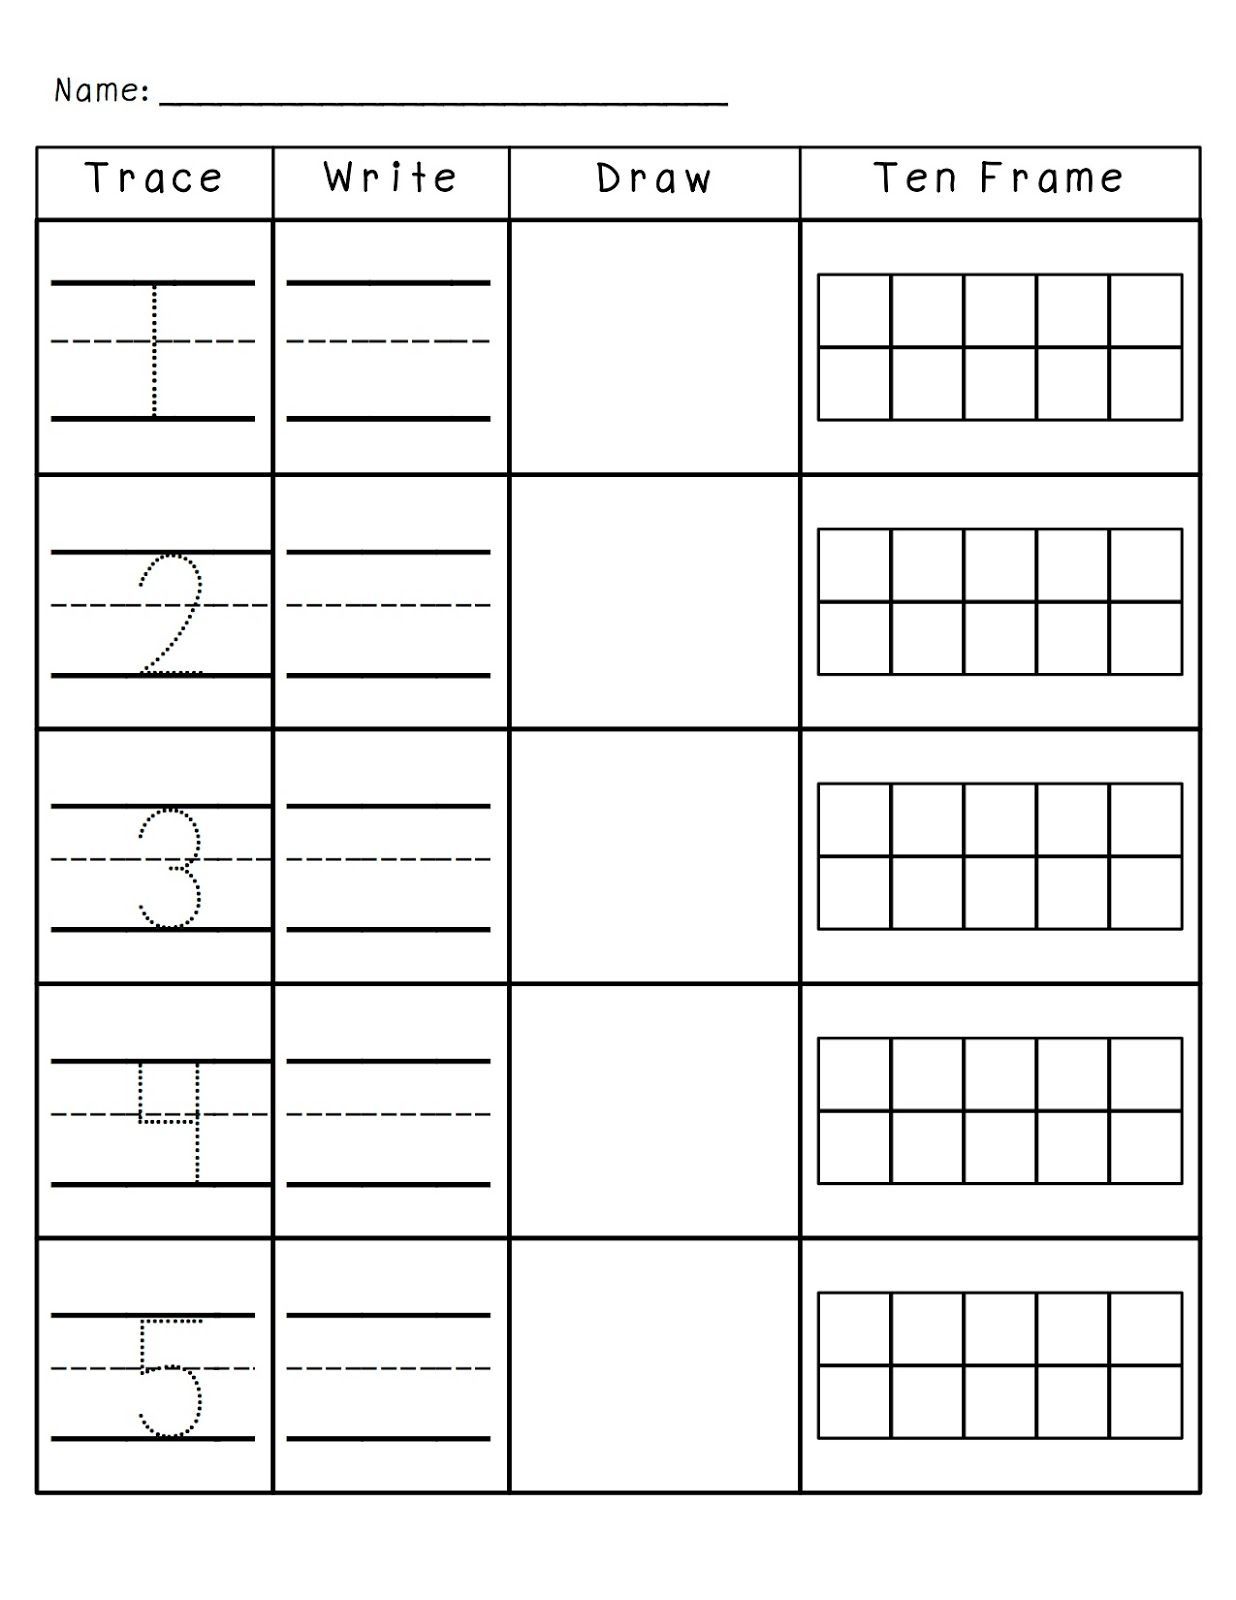 Number Practice 1-10: Trace, Write, Draw, Fill In Ten Frame. Plus A | Frame Games Printable Worksheets